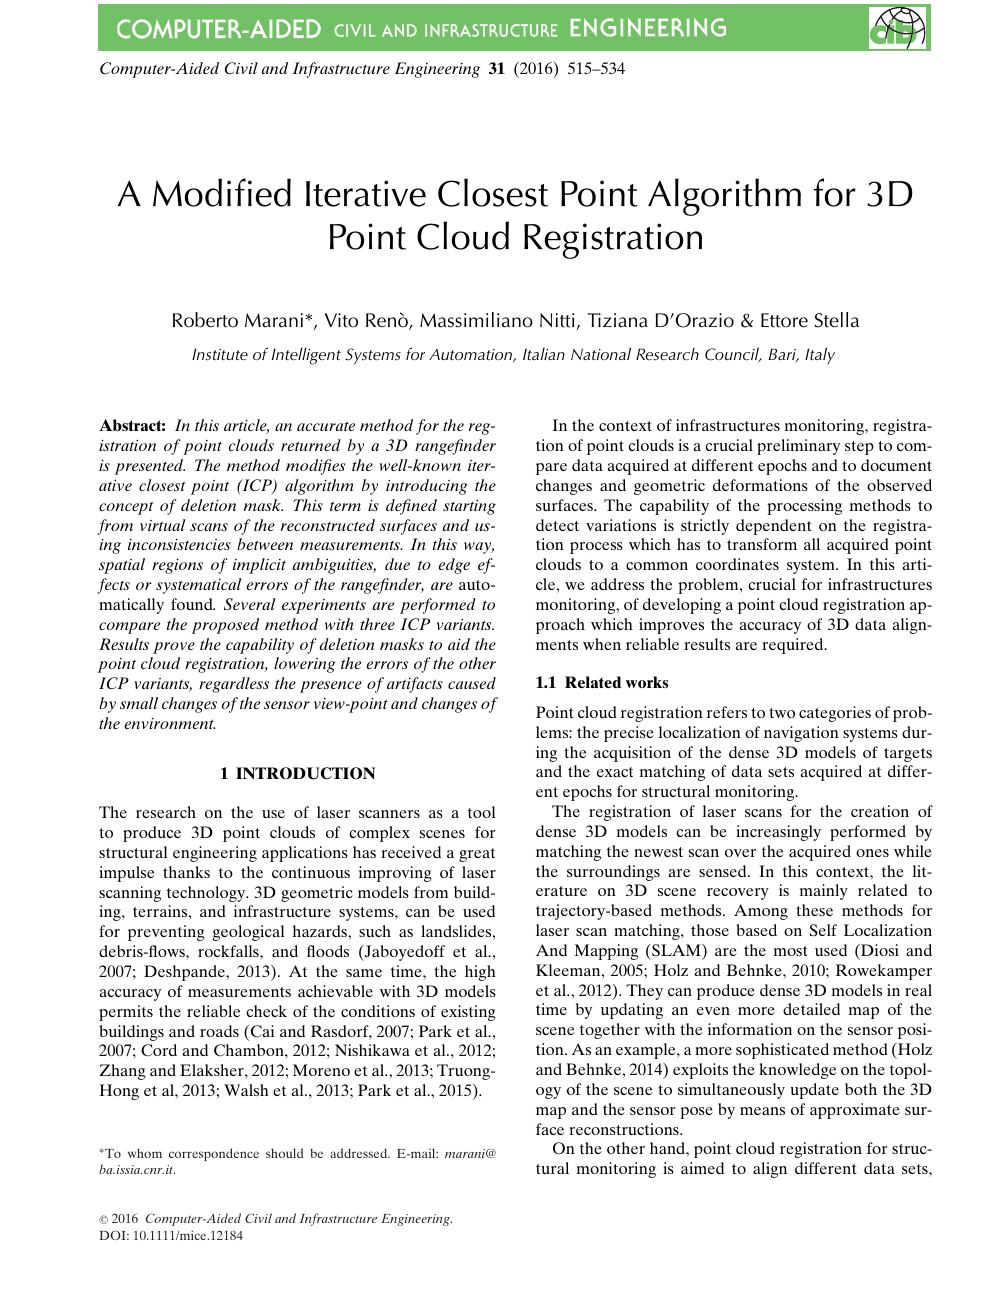 A Modified Iterative Closest Point Algorithm for 3D Point Cloud